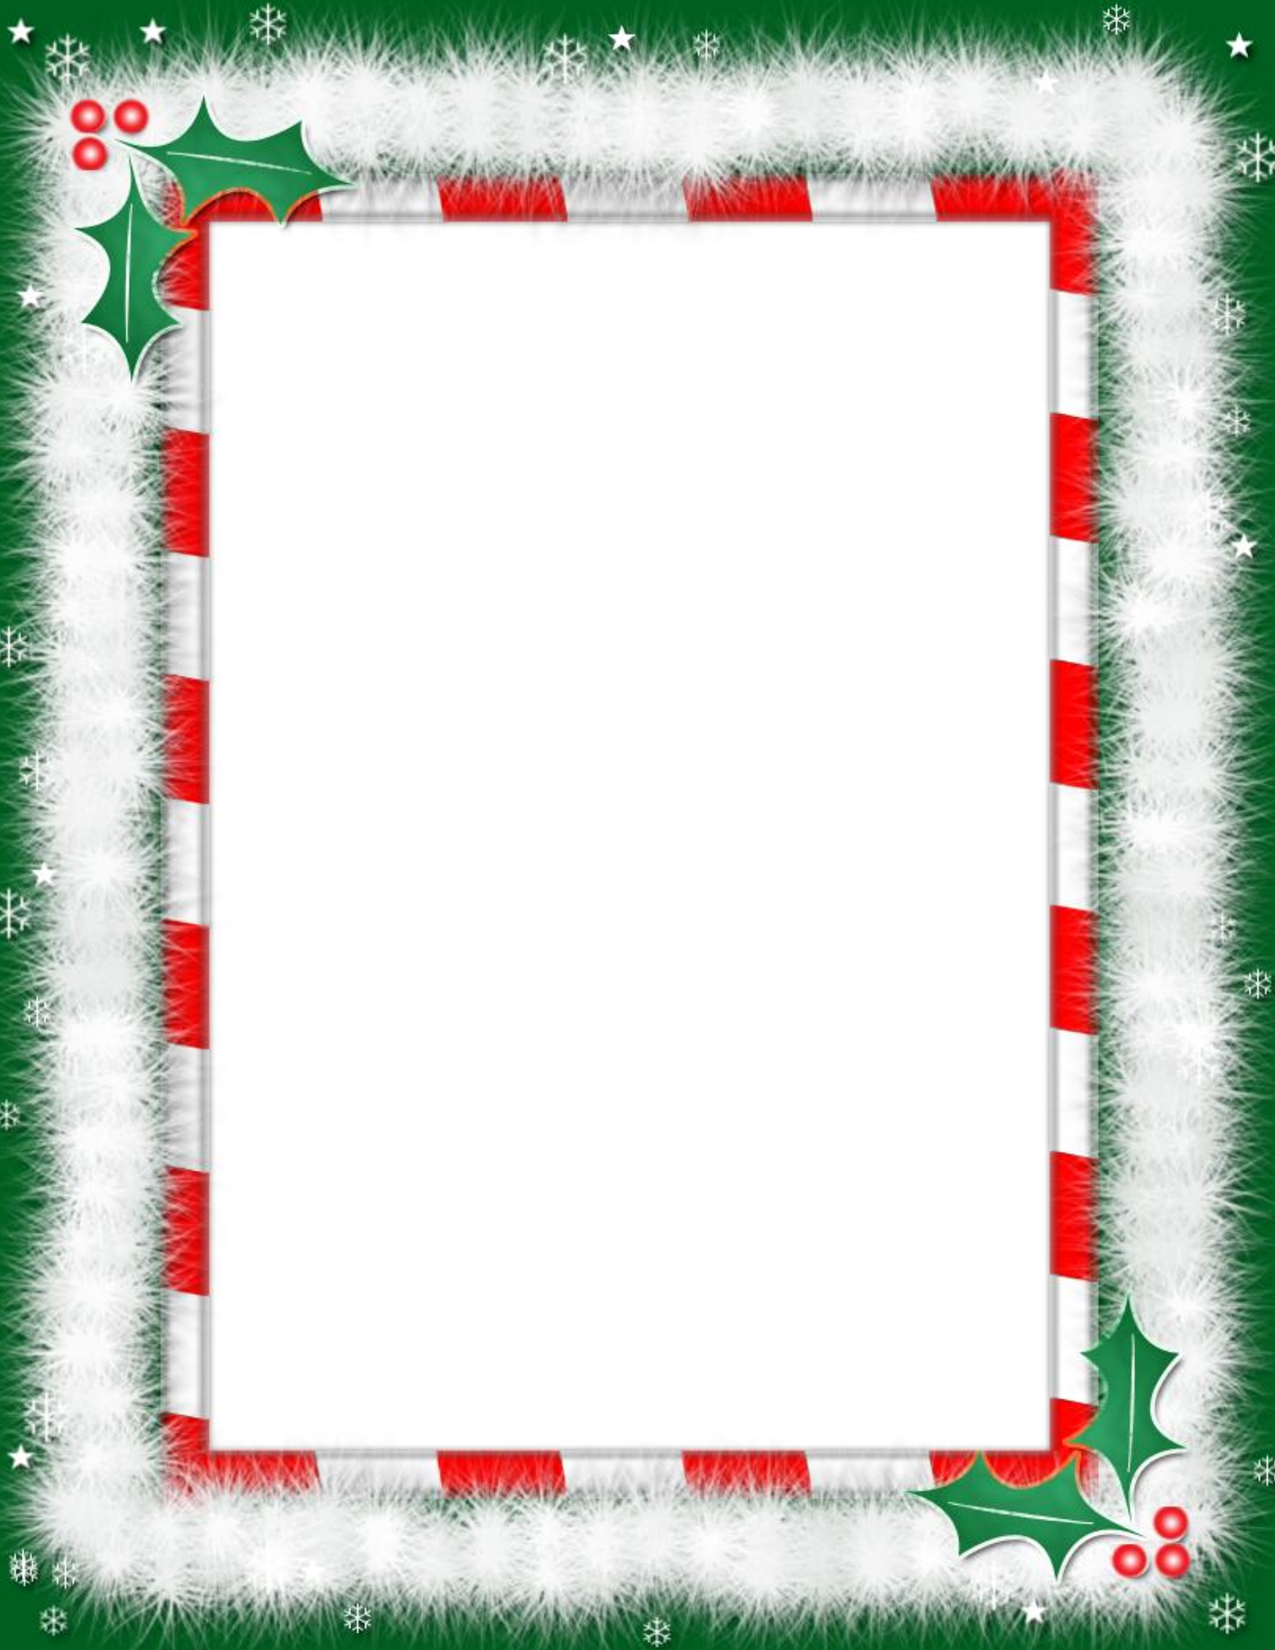 free border templates for microsoft word - 17 free christmas templates for word images free word